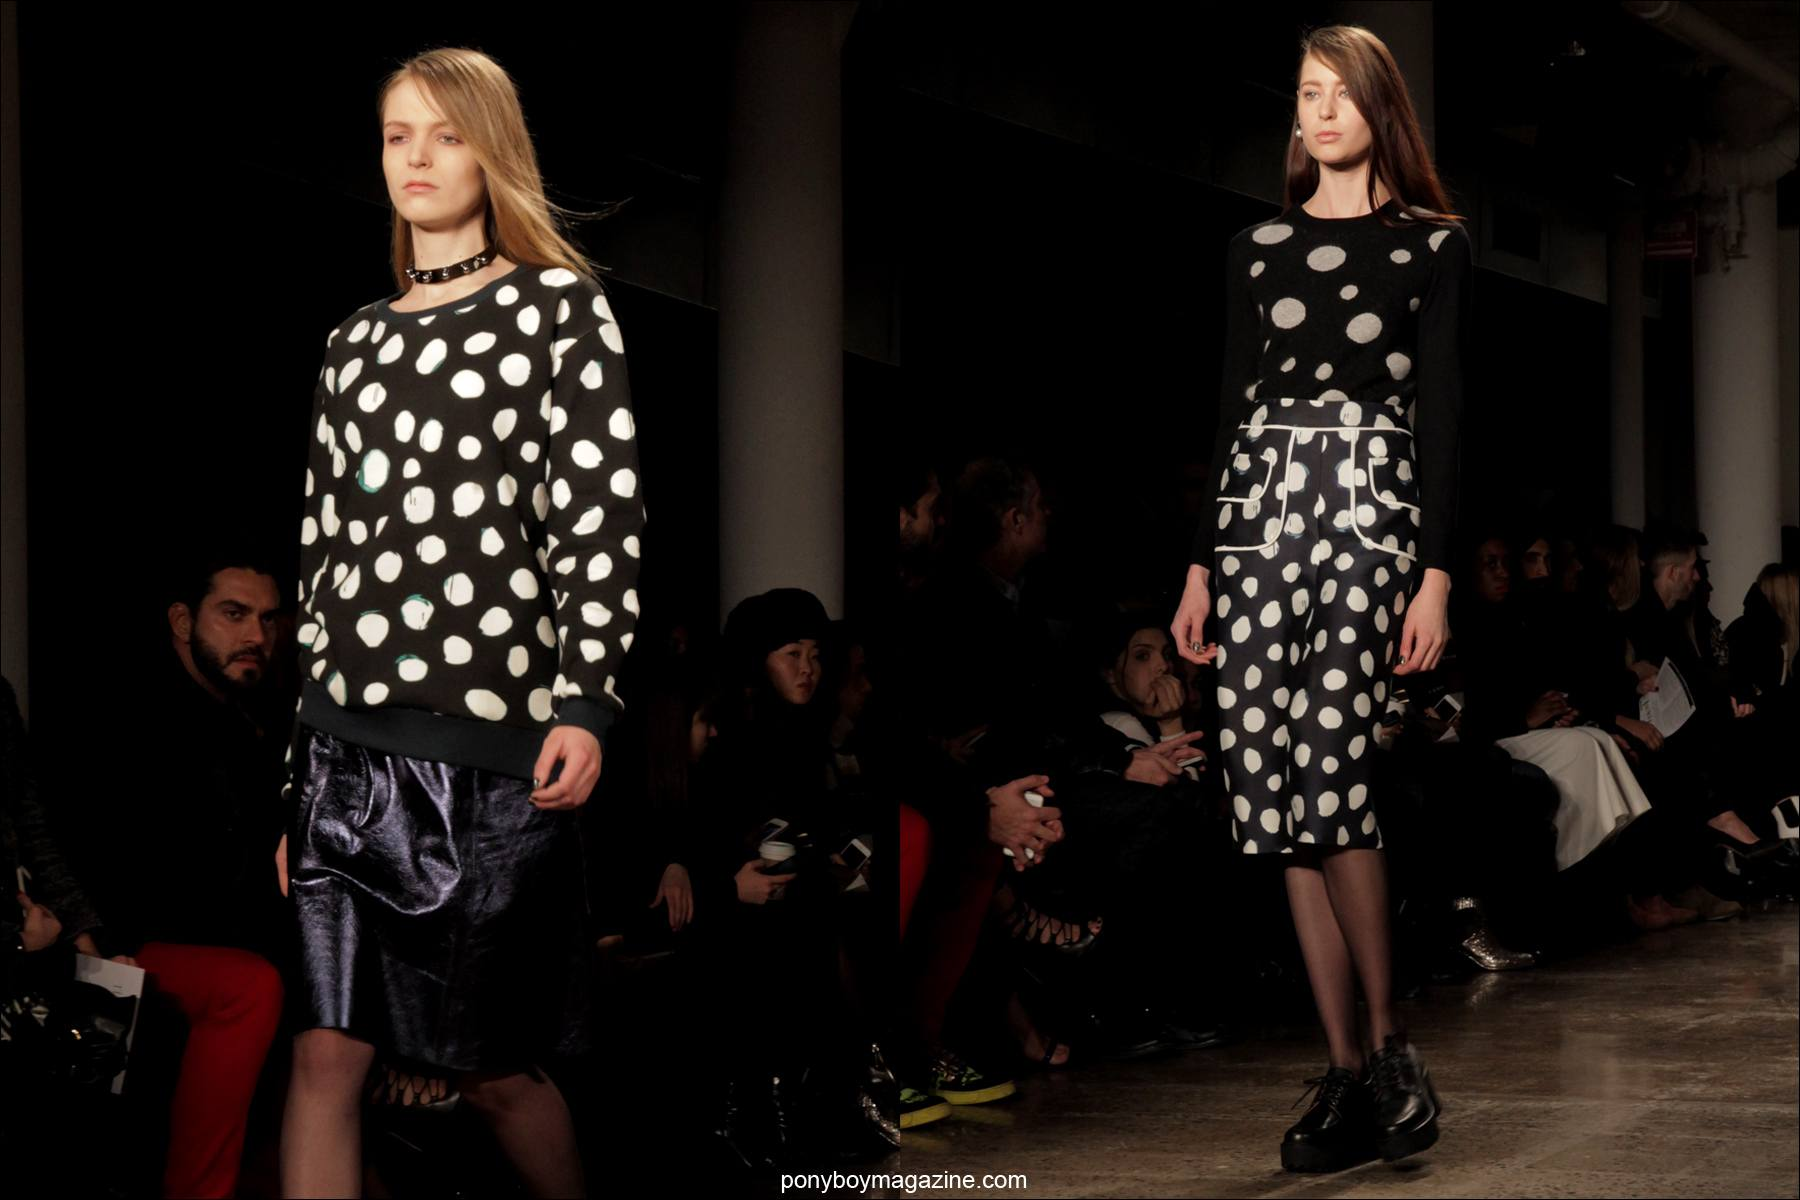 B&W polka dot designs on the runway at Timo Weiland A/W 2014 Collection in New York City. Captured by photographer Alexander Thompson for Ponyboy Magazine.